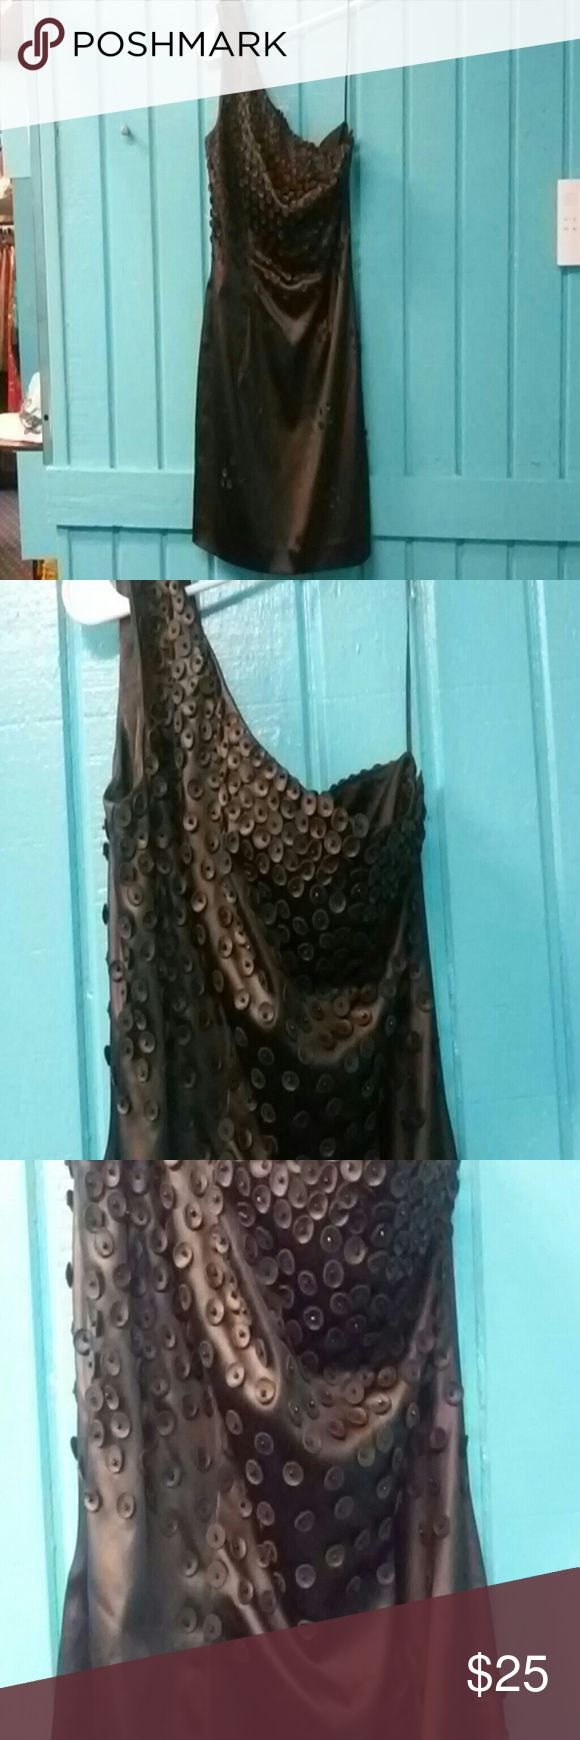 A.B.S. Black Silky Stretchy One Strap Dress Size 4 A.B.S. Black Silky Stretchy One Strap w/ Circle Leather and Beads Sewn on Dress Size 4-Pre-owned A.B.S. Dresses